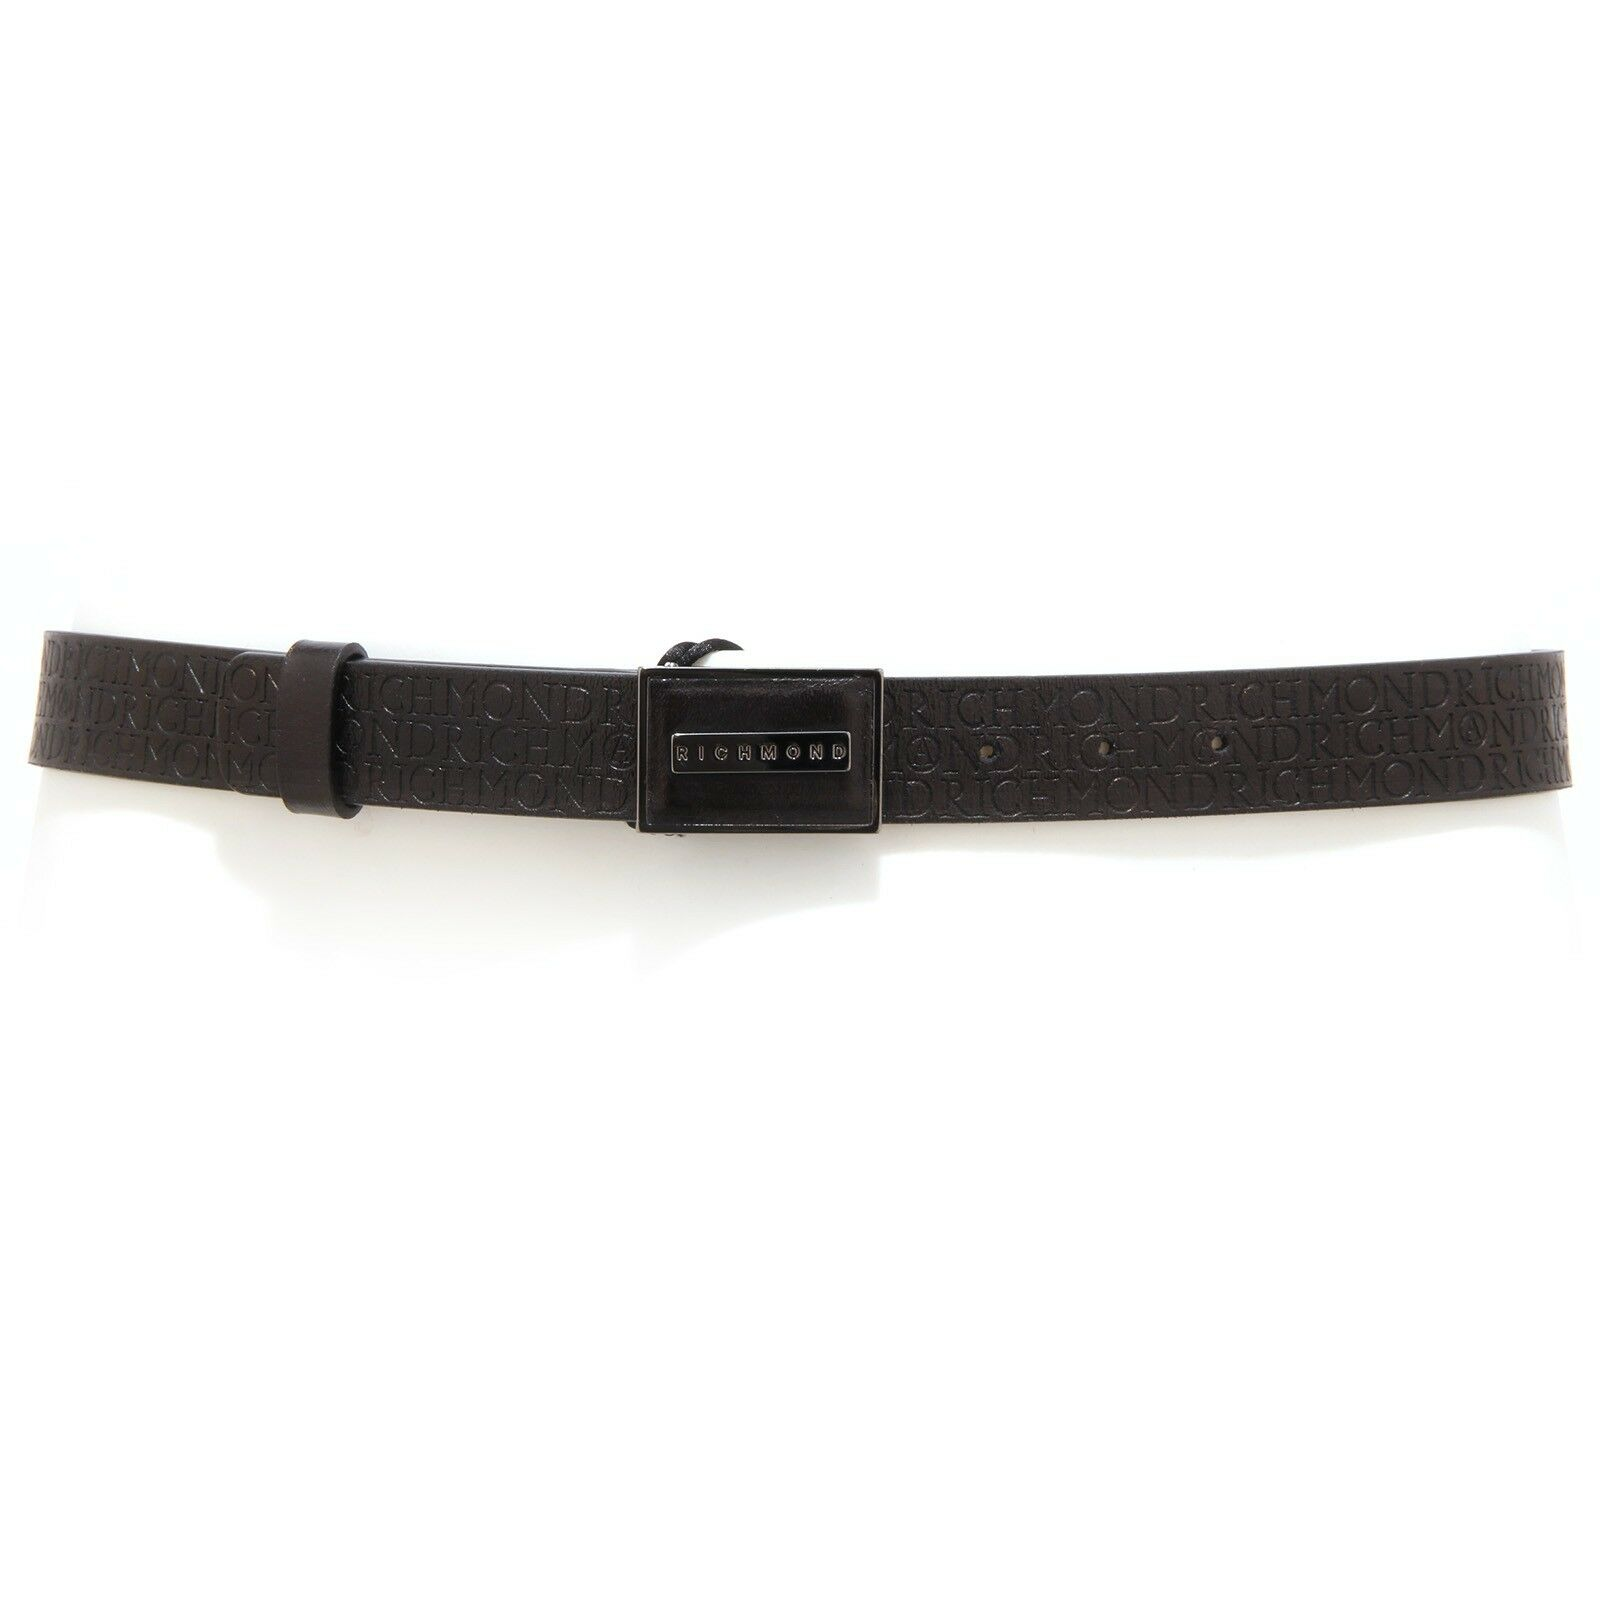 6325U cintura donna RICHMOND ecopelle nero belt black unisex